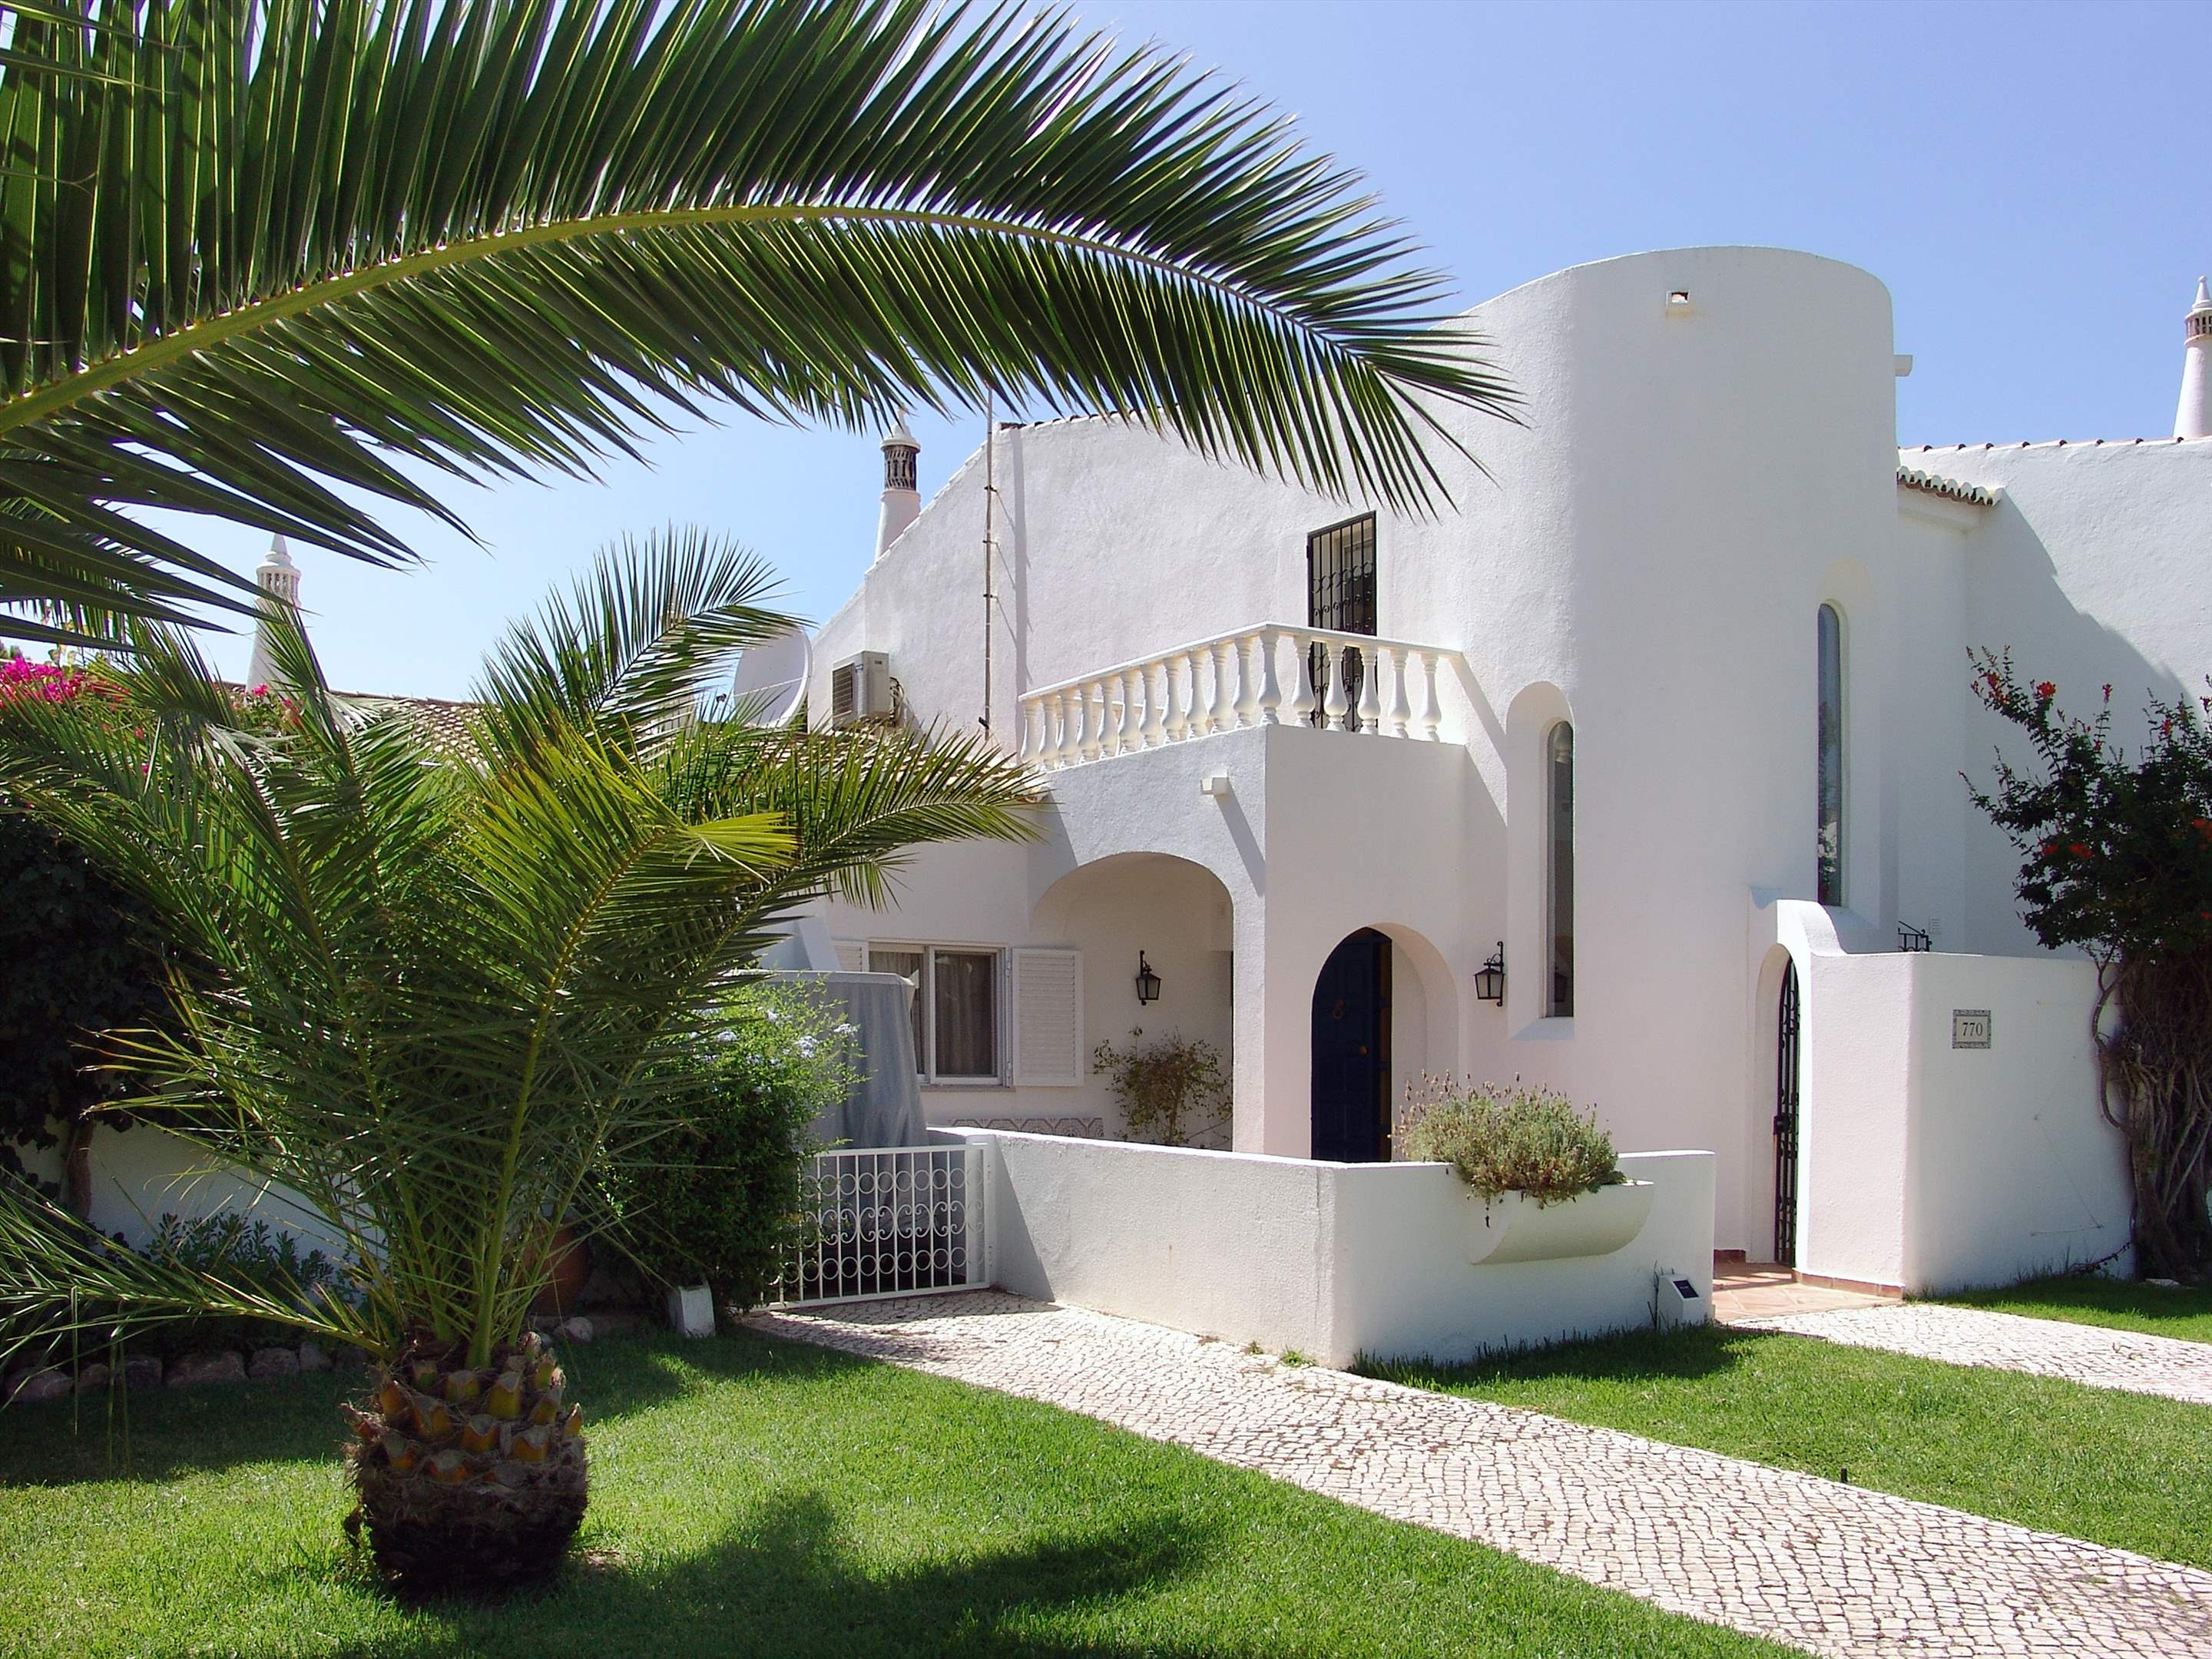 Villa Mimosa 9, 3 bedroom villa in Vale do Lobo, Algarve Photo #10